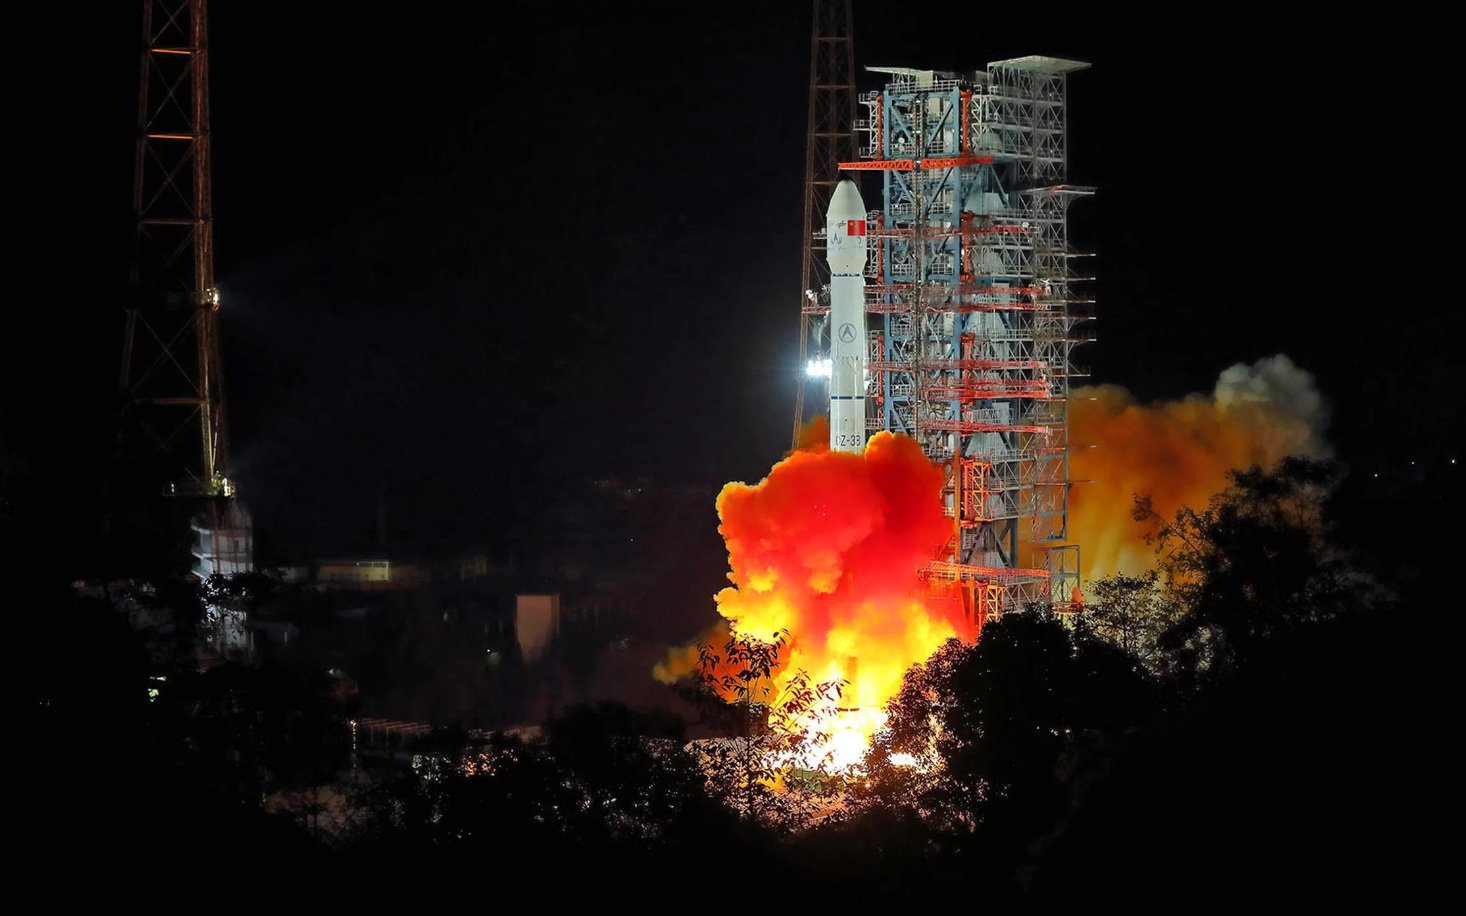 China sent a lunar Rover on the dark side of the moon